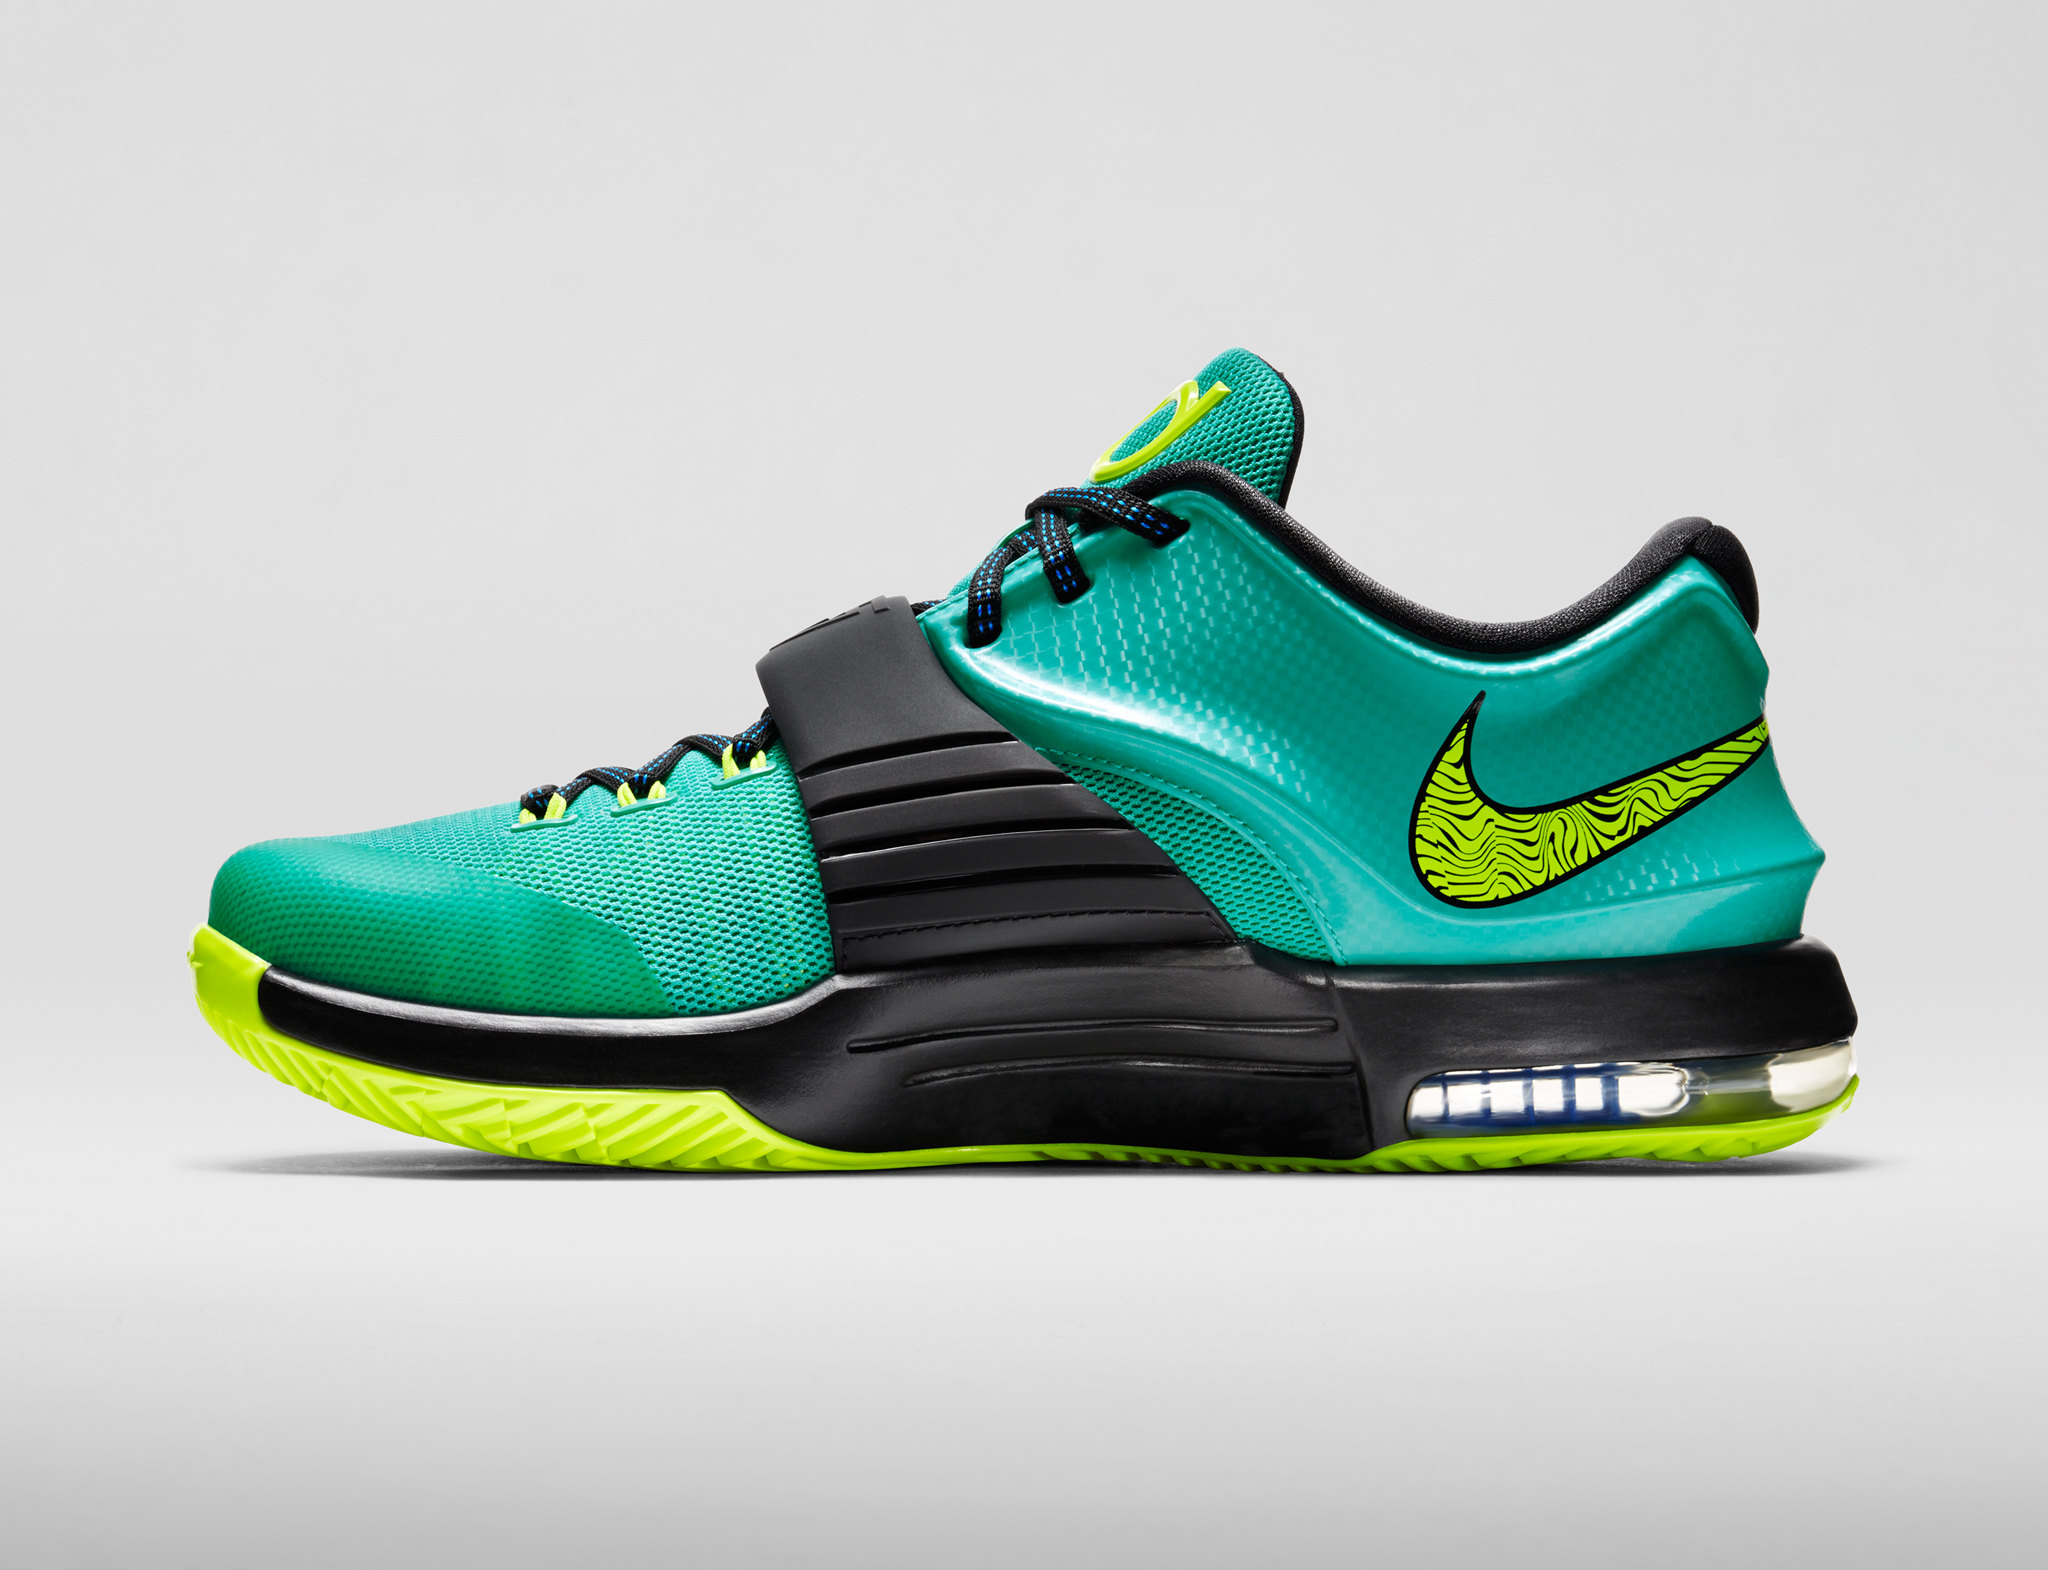 sports shoes b8d5b bbbf8 ... sweden kd7 uprising elevating to the top nike news 5f961 30582